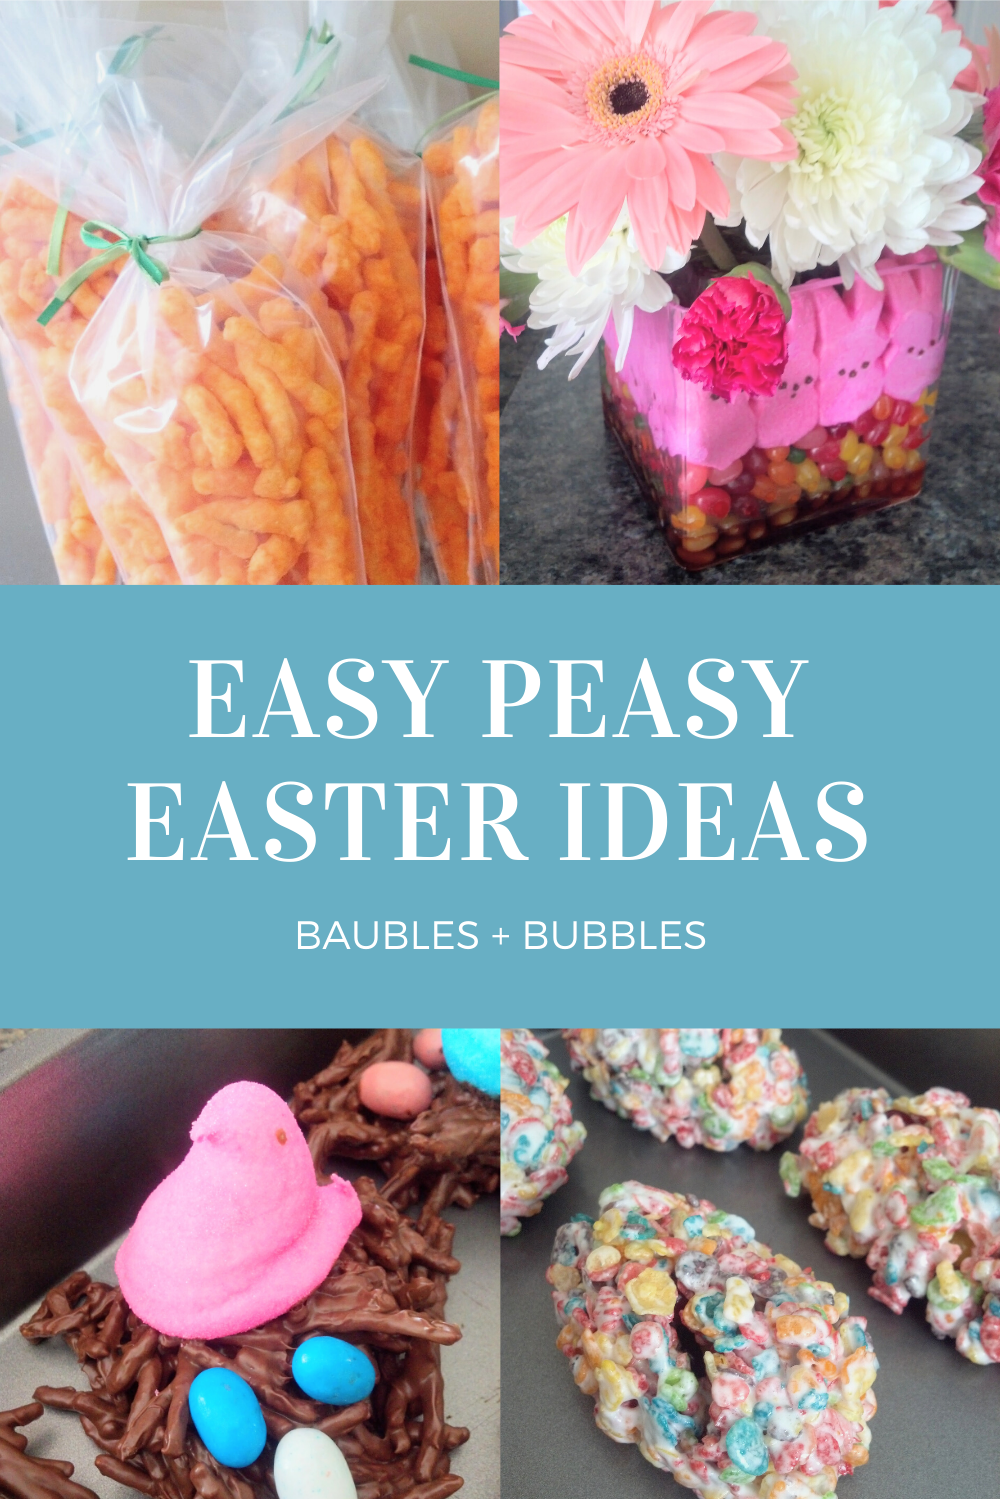 Easy Easter Ideas | Baubles + Bubbles